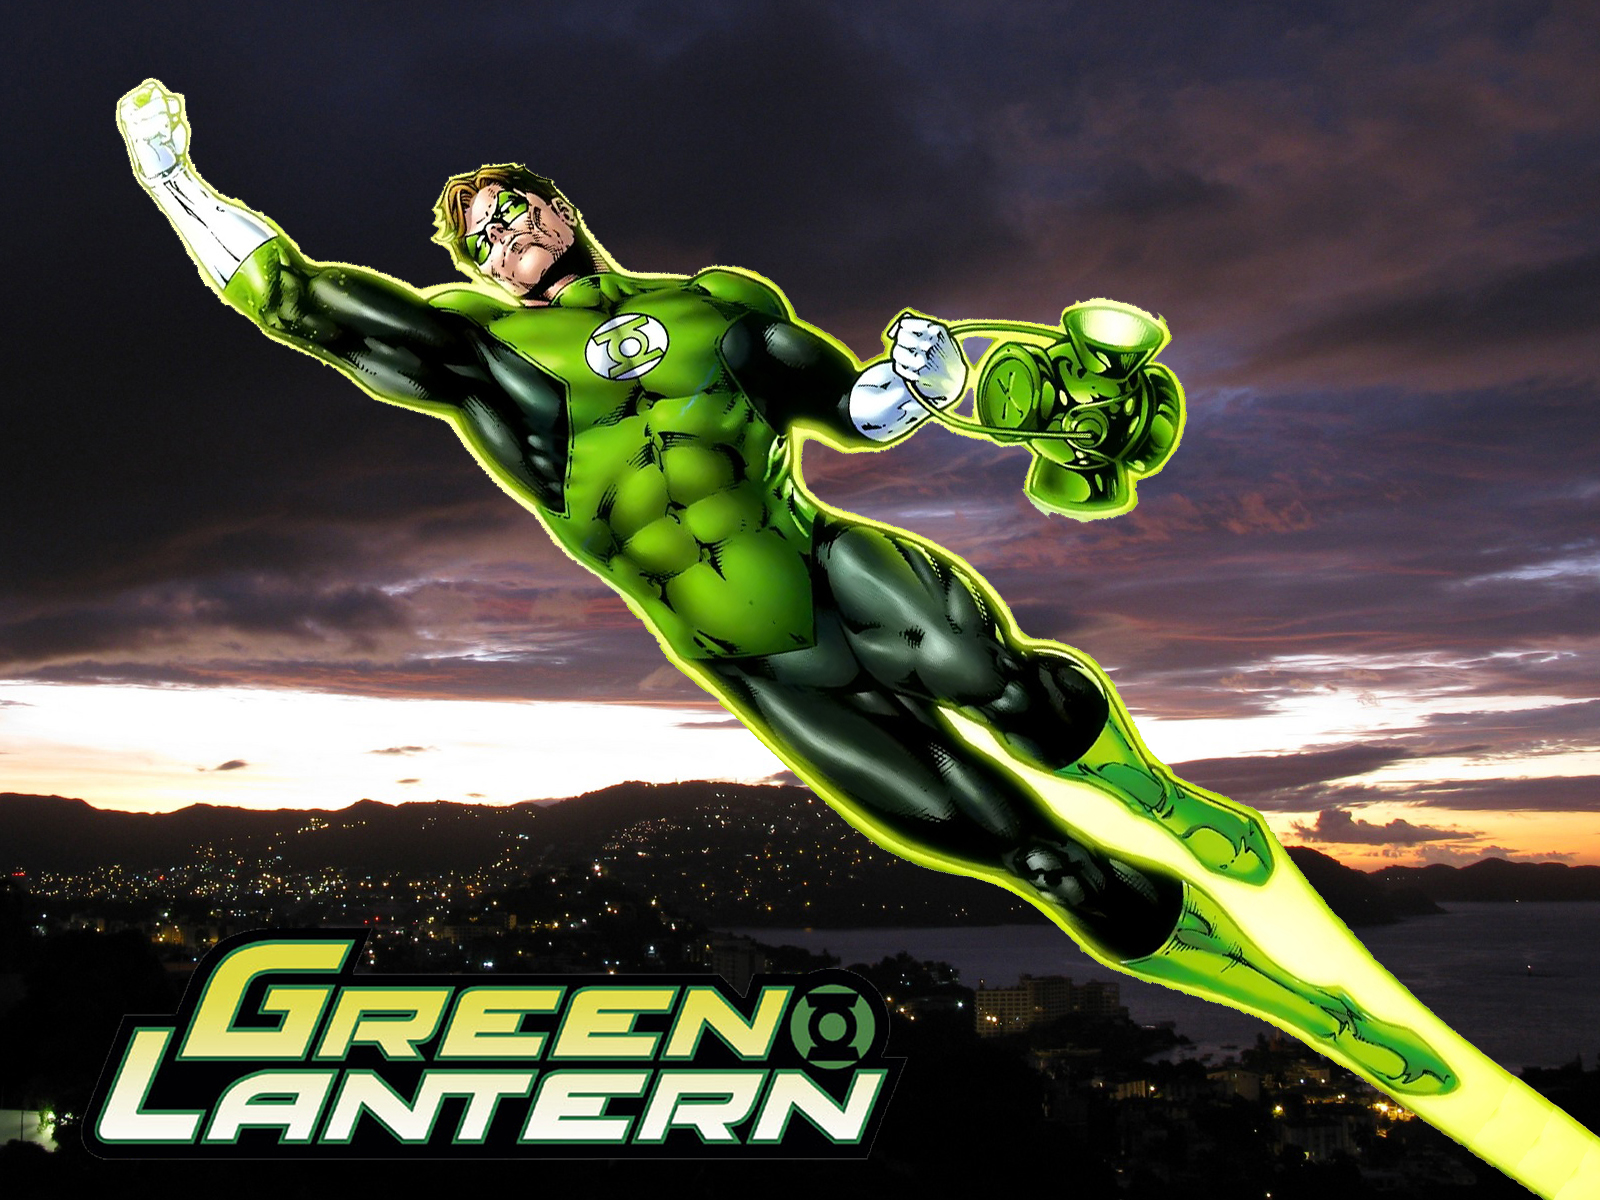 Green Lantern Wallpaper and Background Image 1600x1200 ID 1600x1200